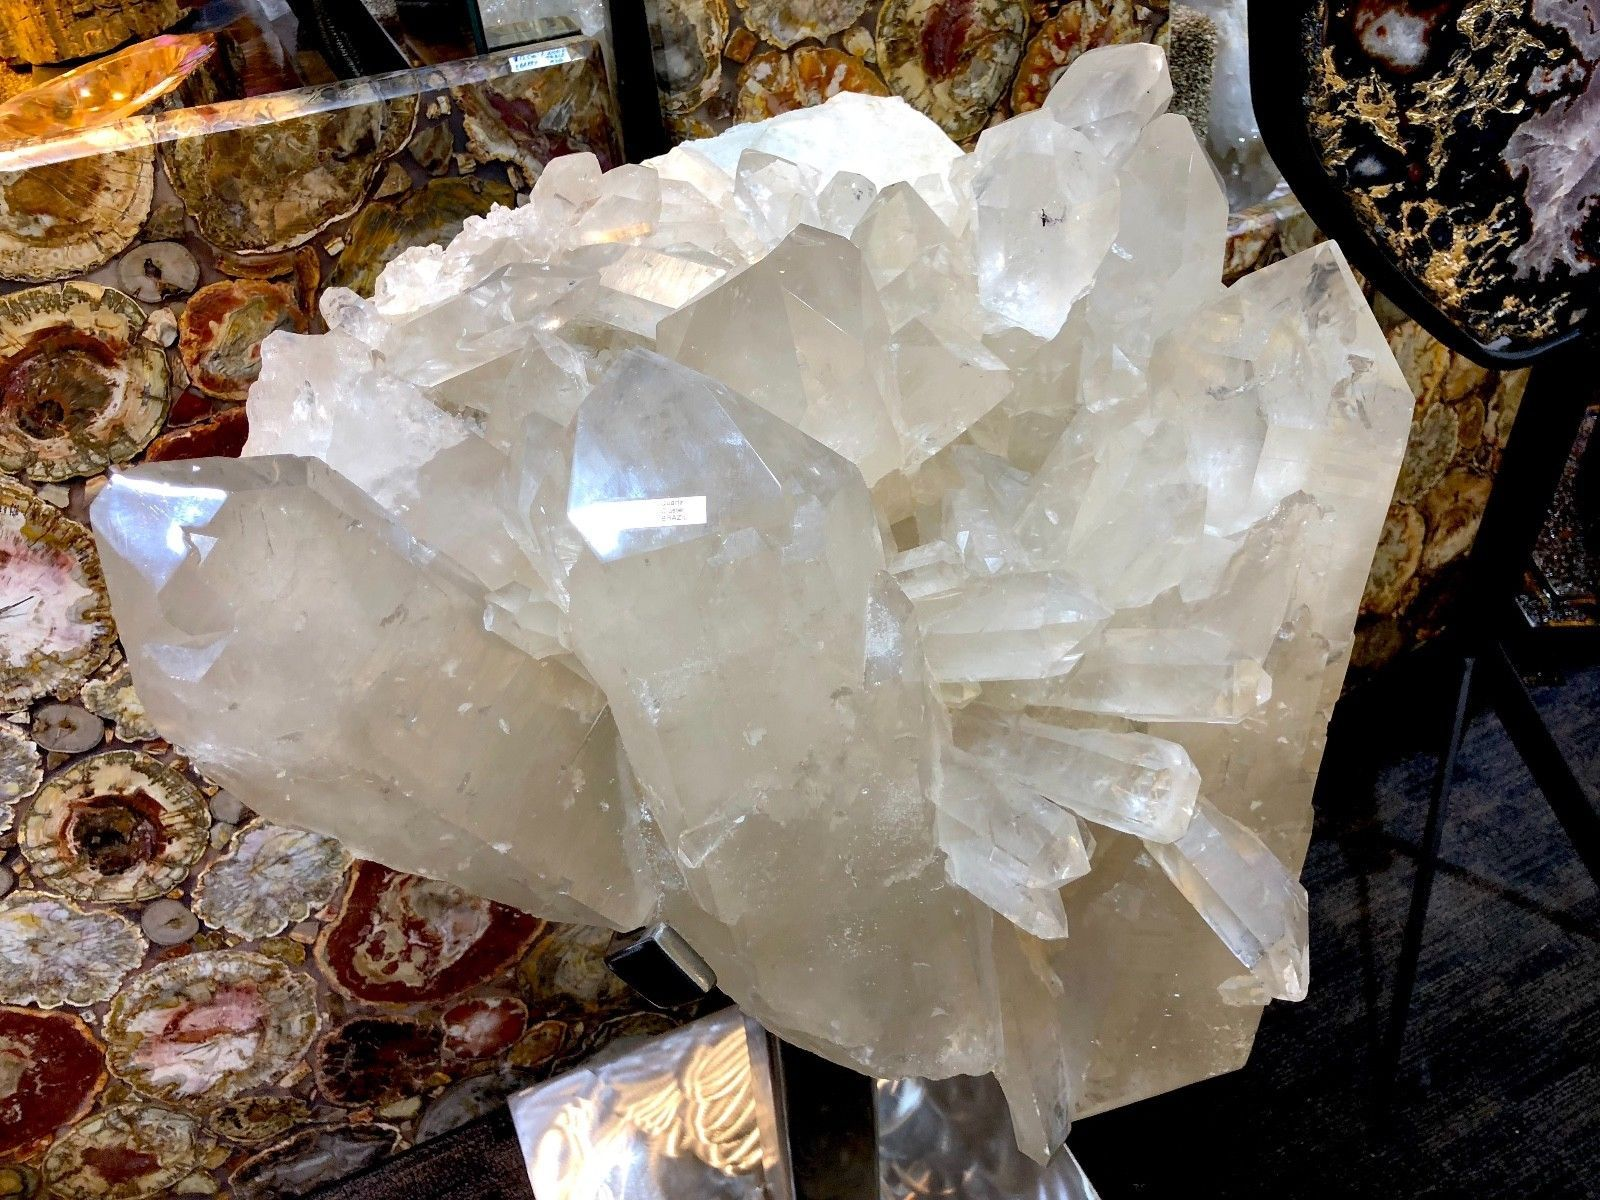 CRYSTAL QUARTZ w/ STAND MINERAL ROCK INCREDIBLE FORMATIONS Sticker $45,000